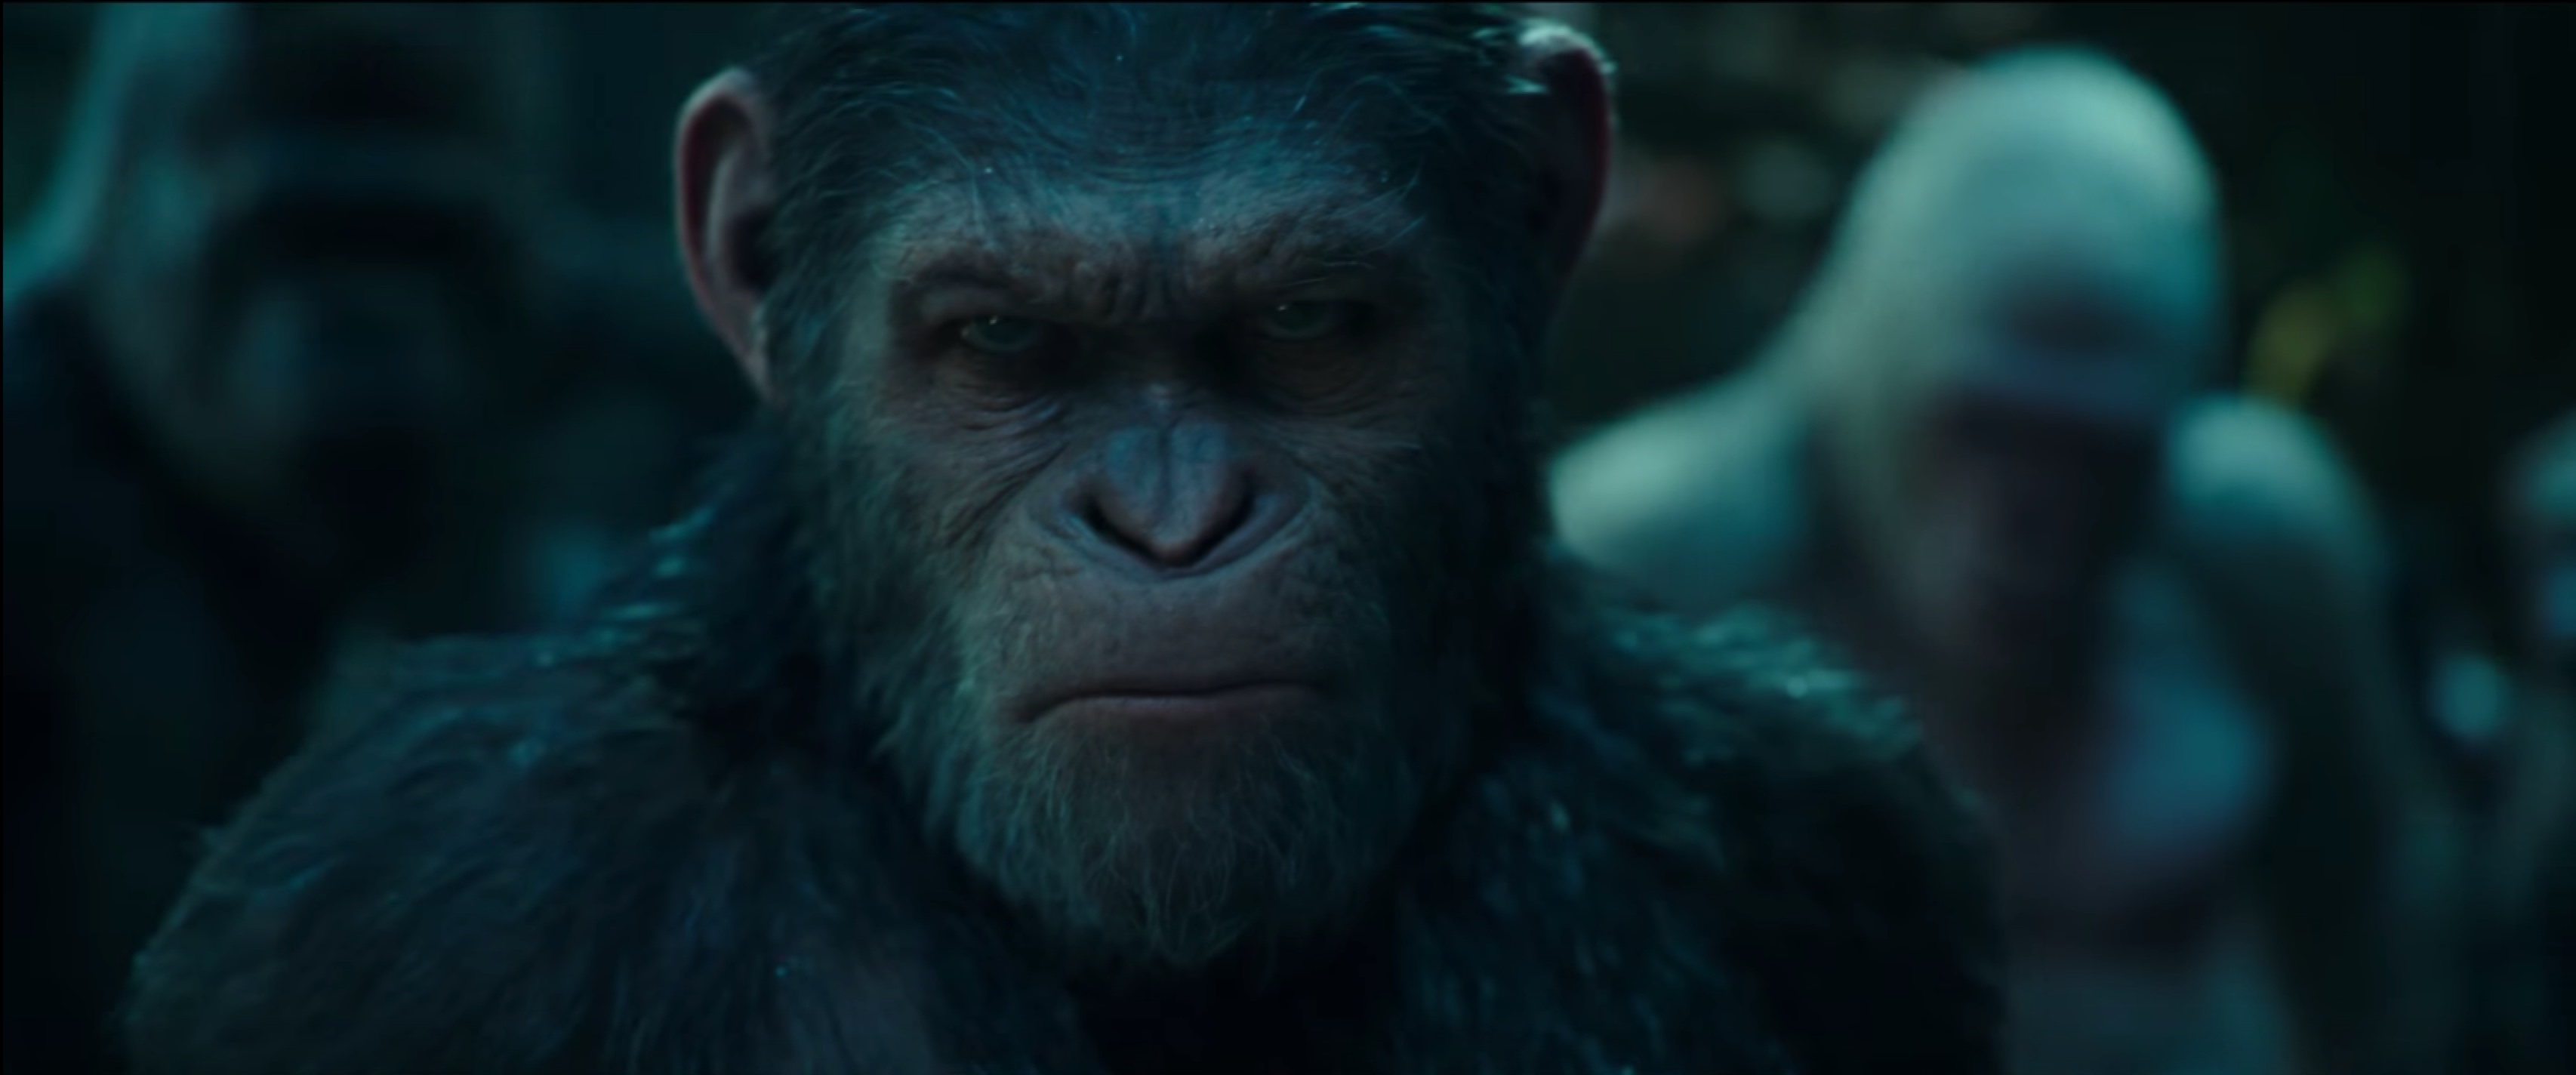 /Film'War for the Planet of the Apes' Review Round-Up: An Astonishing, Absorbing Sequel